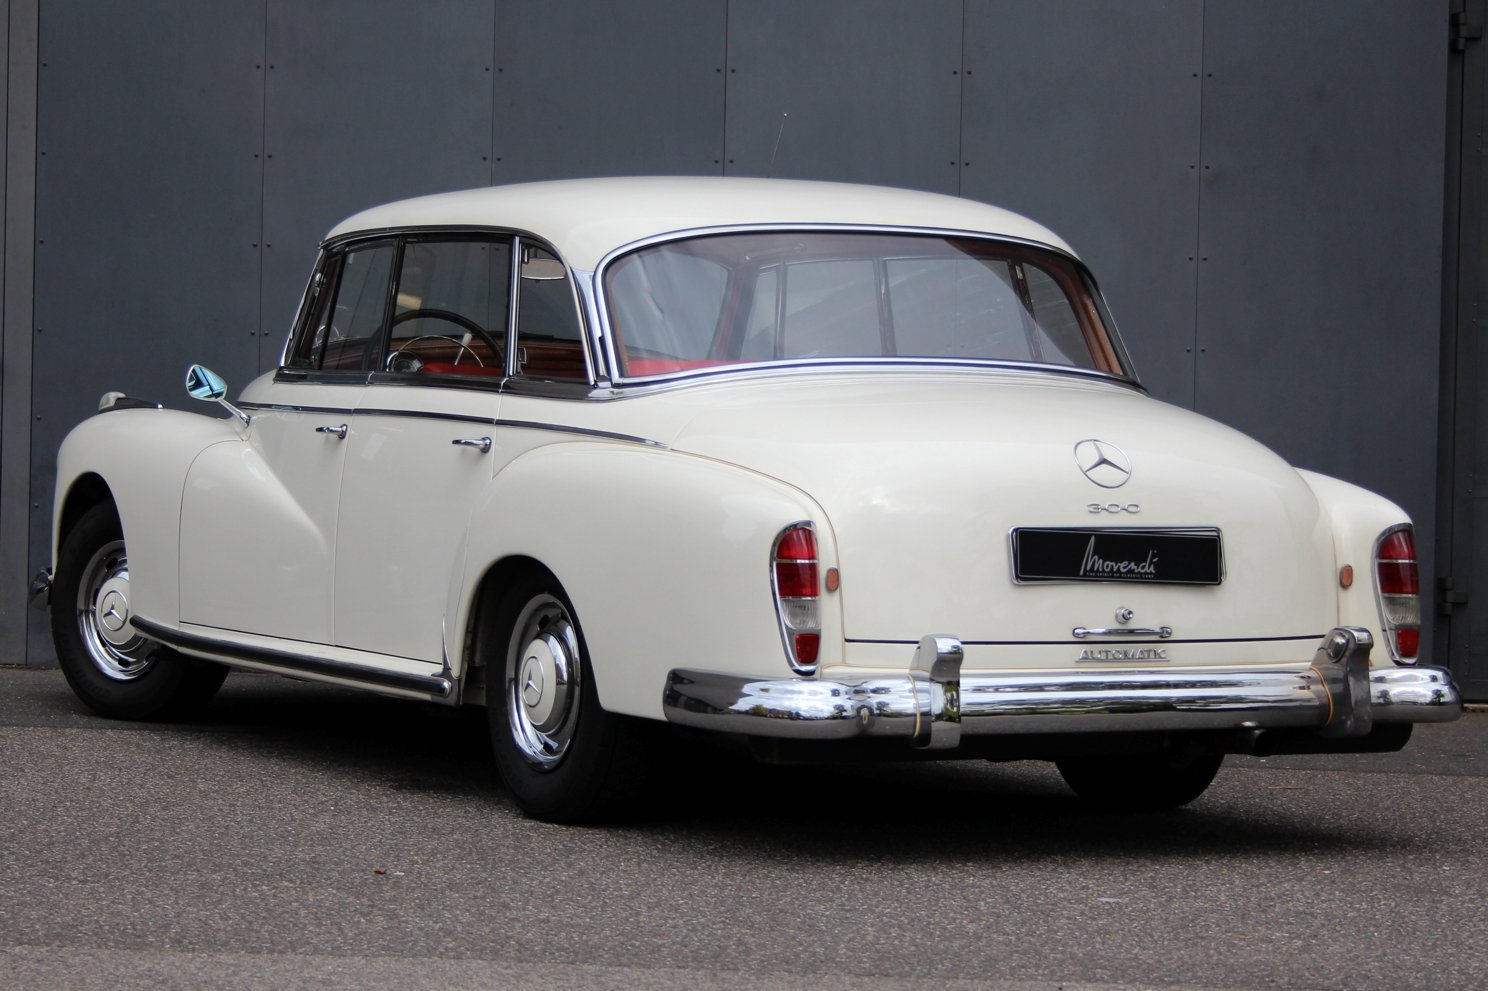 1958 Mercedes-Benz Typ 300 D - Adenauer - Automatic LHD For Sale (picture 2 of 6)